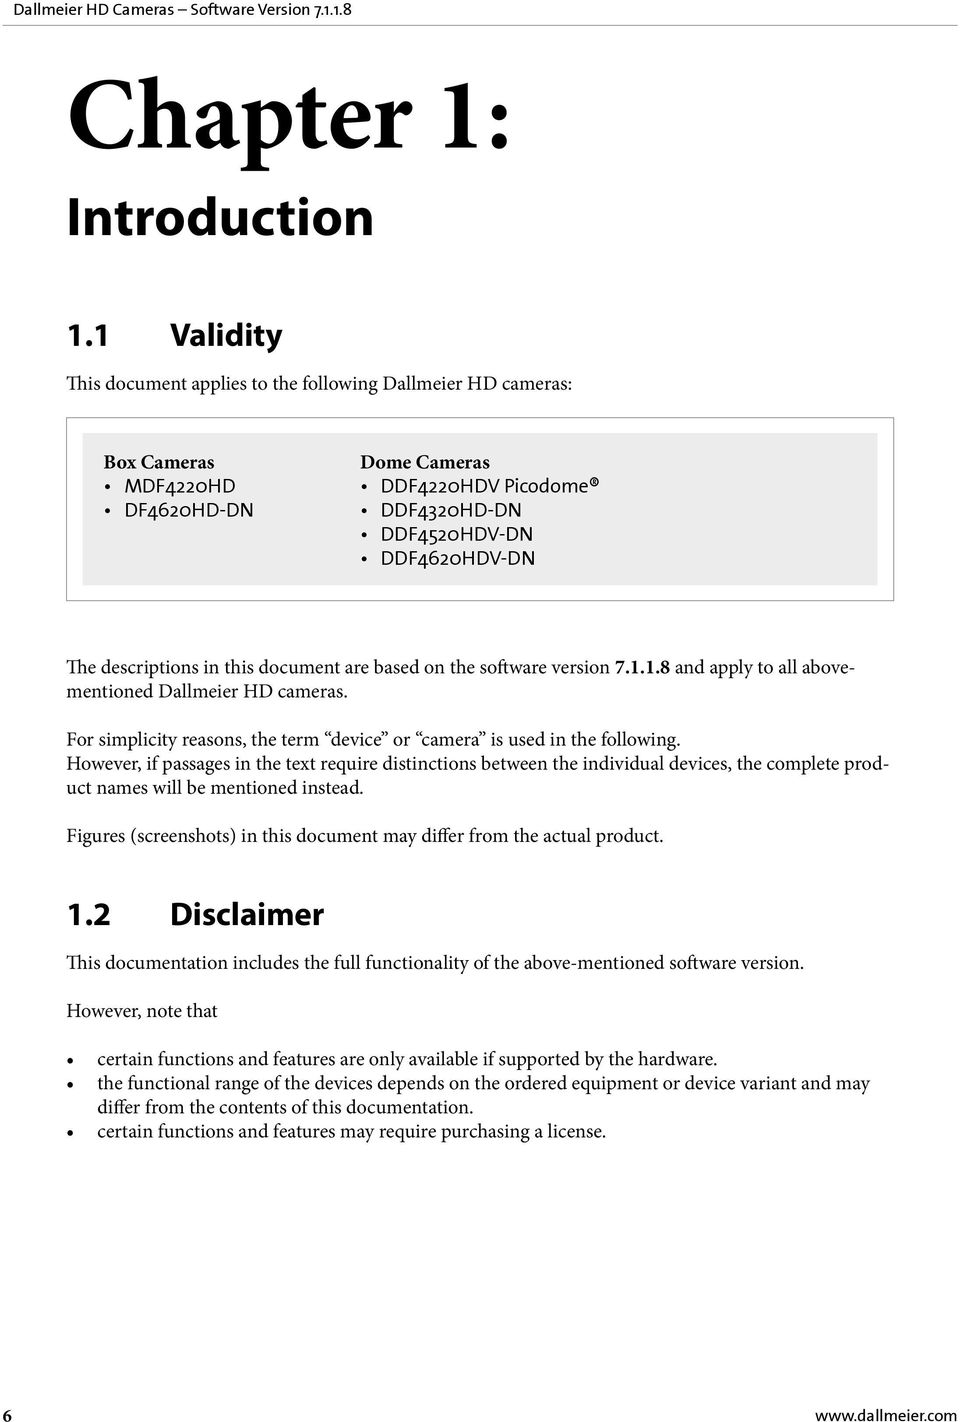 this document are based on the software version 7.1.1.8 and apply to all abovementioned Dallmeier HD cameras. For simplicity reasons, the term device or camera is used in the following.